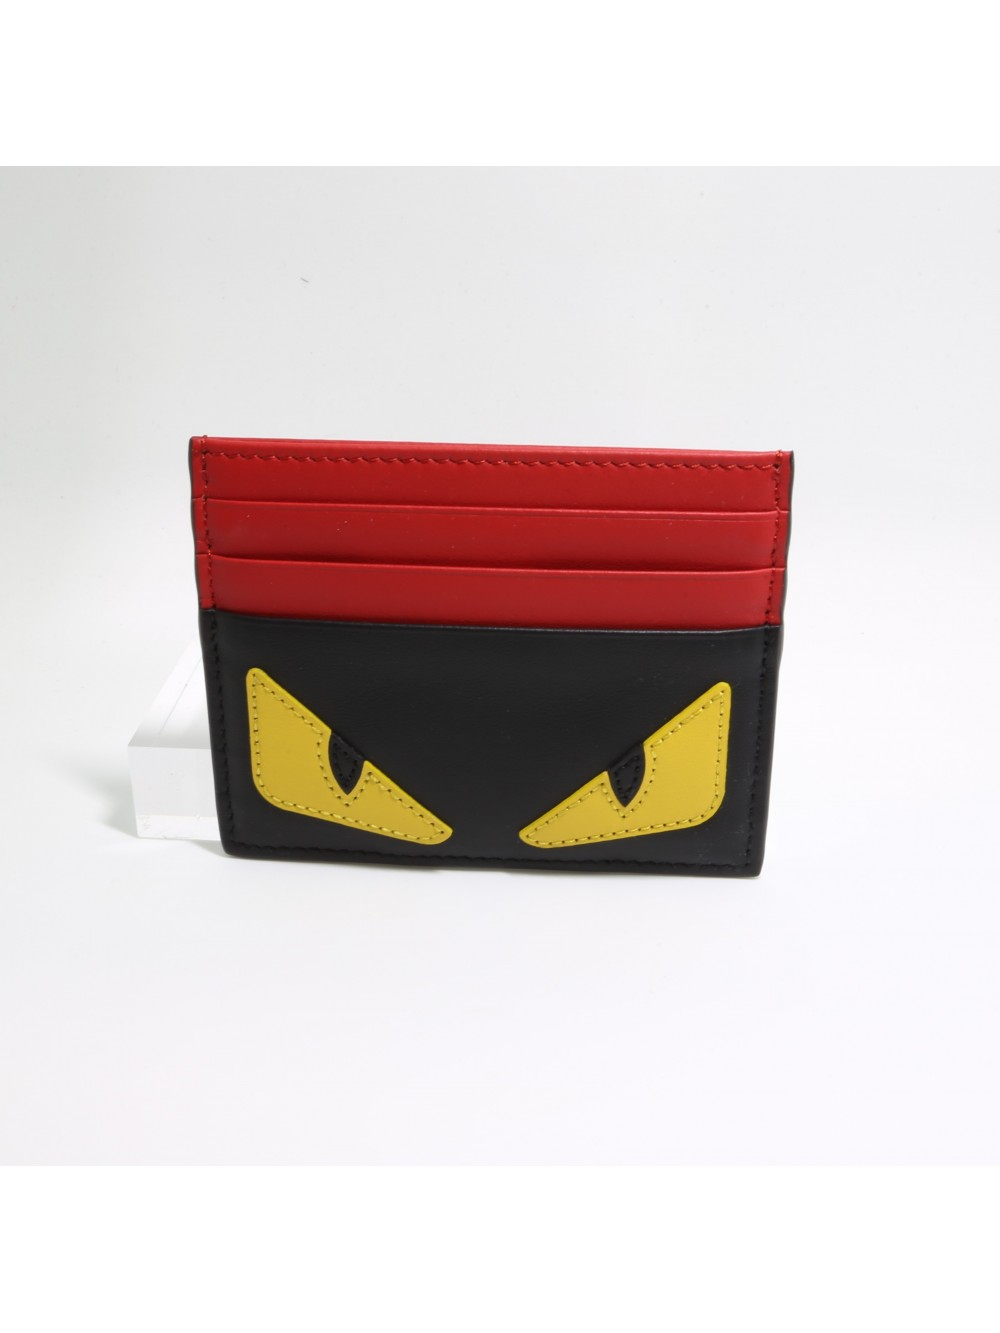 Fendi Mens Card Holder